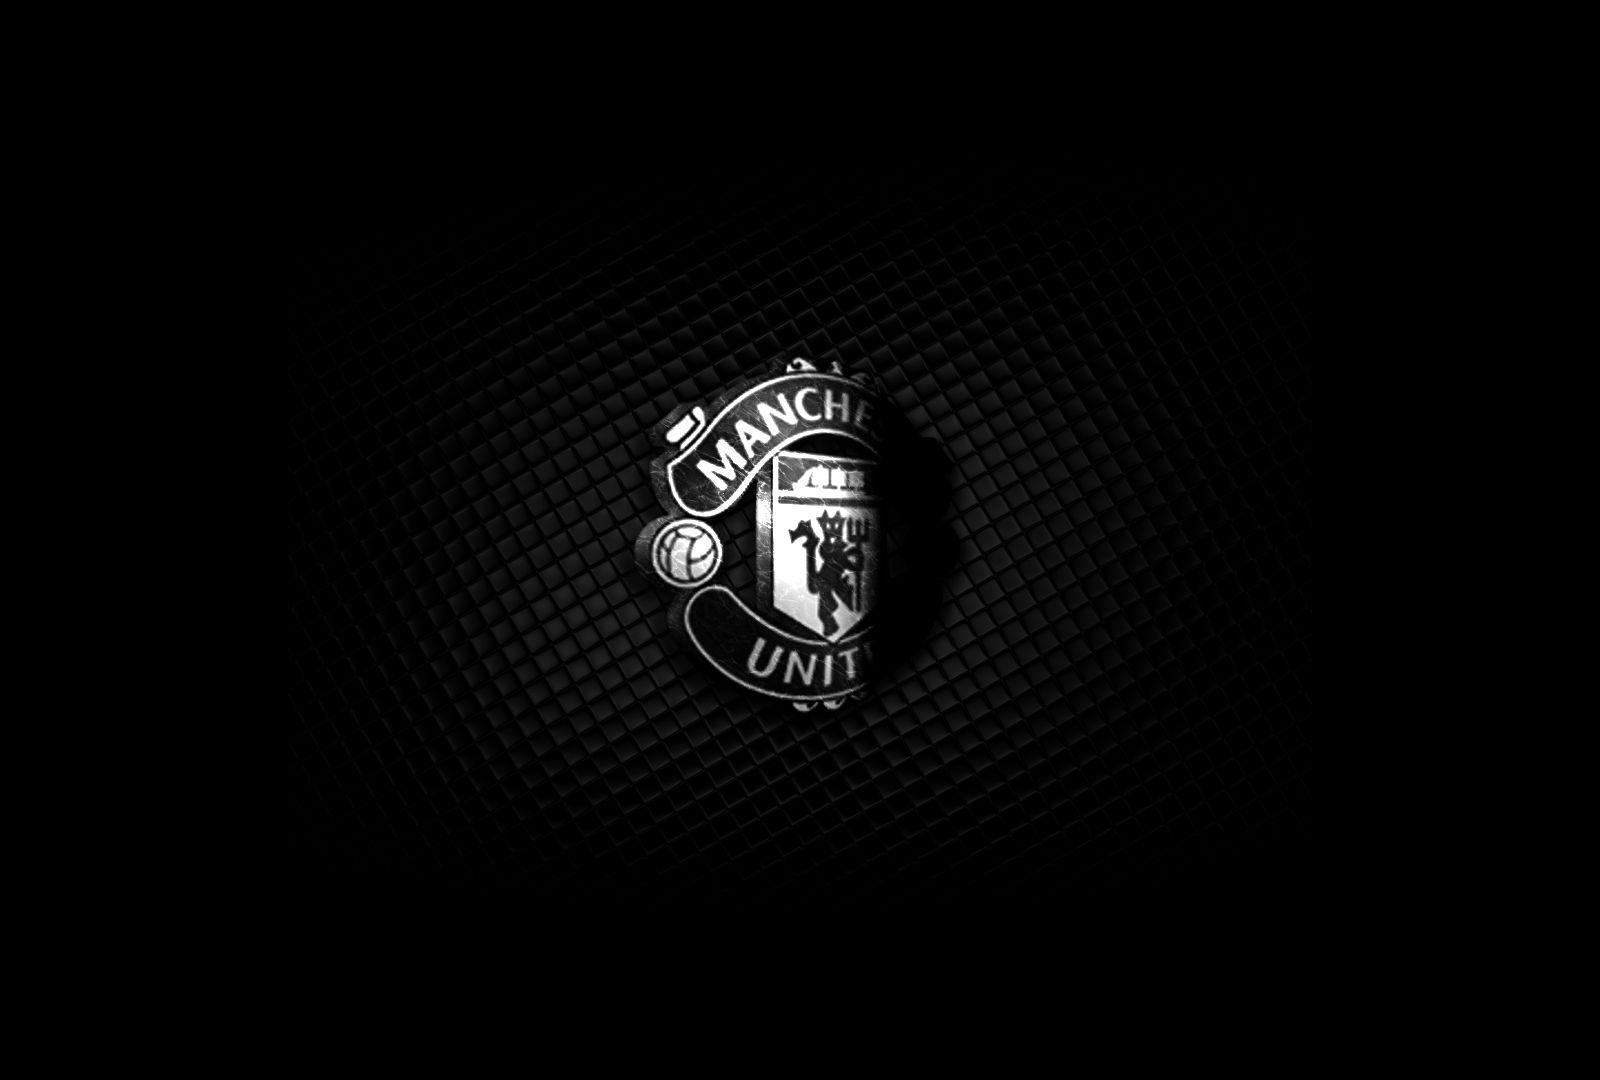 Manchester united wallpapers wallpaper cave manchester united wallpapers voltagebd Image collections